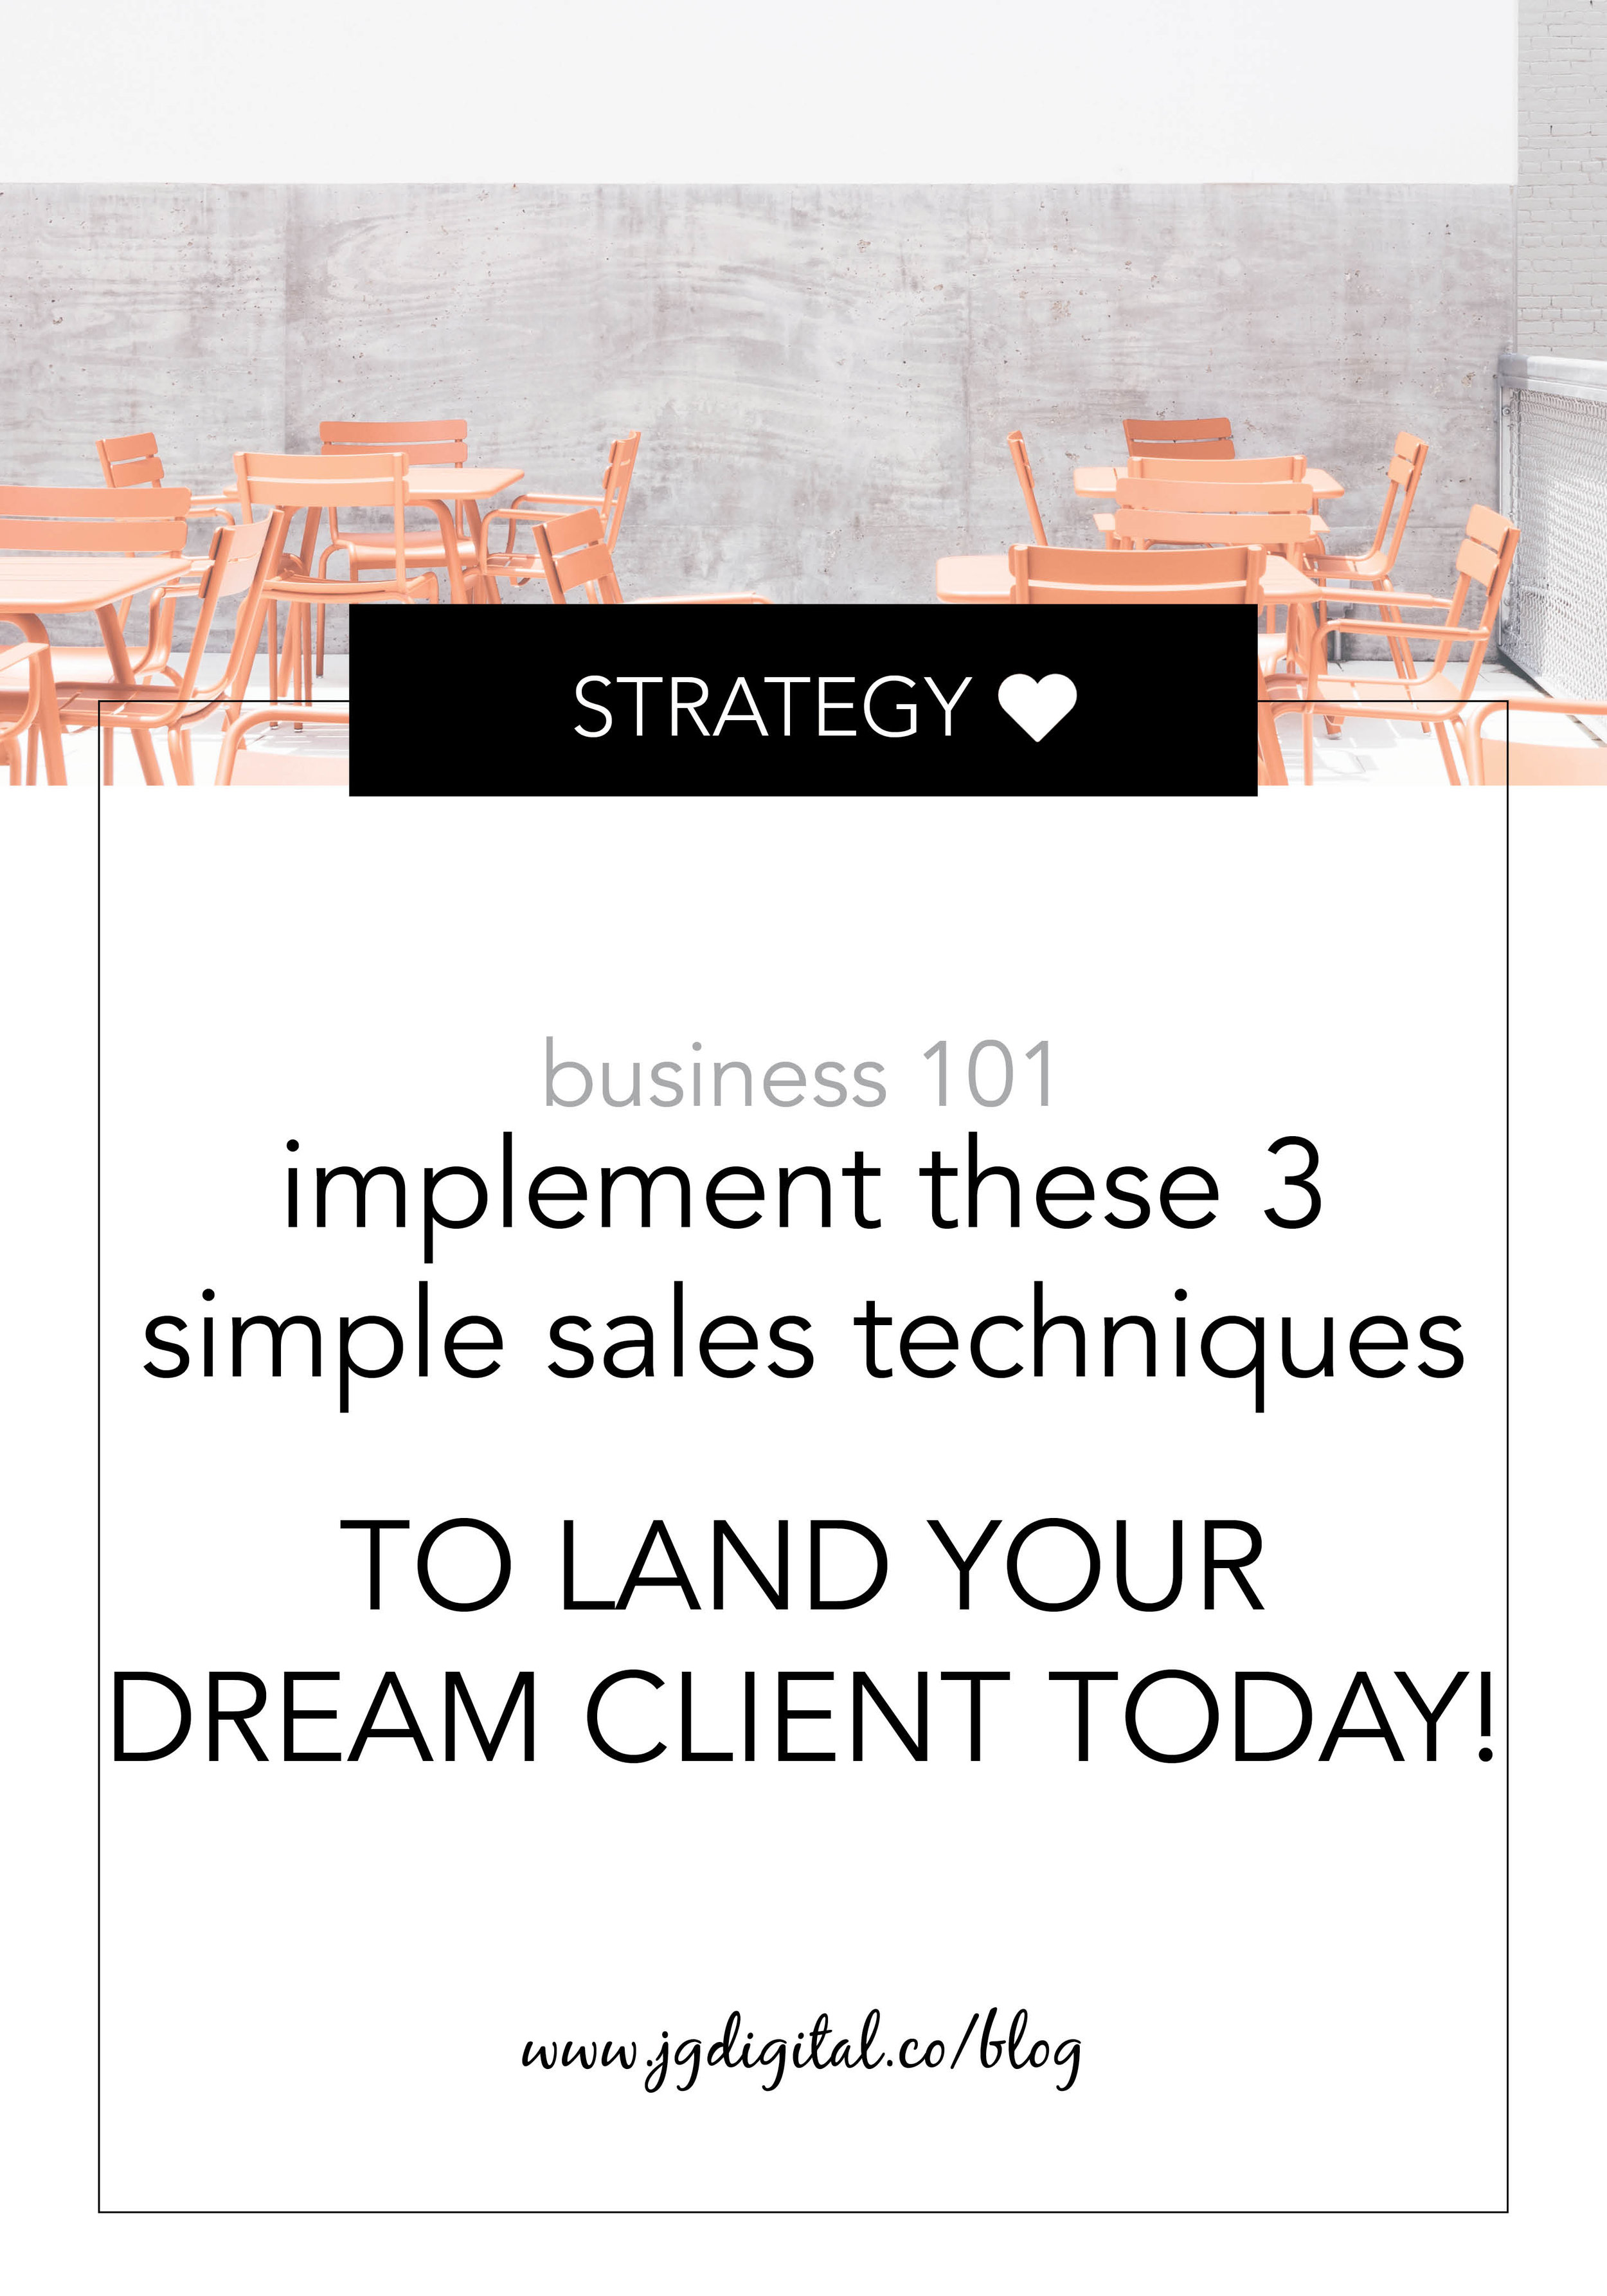 Land Your Dream Client with these 3 Simple Sales Techniques by jgdigital.co